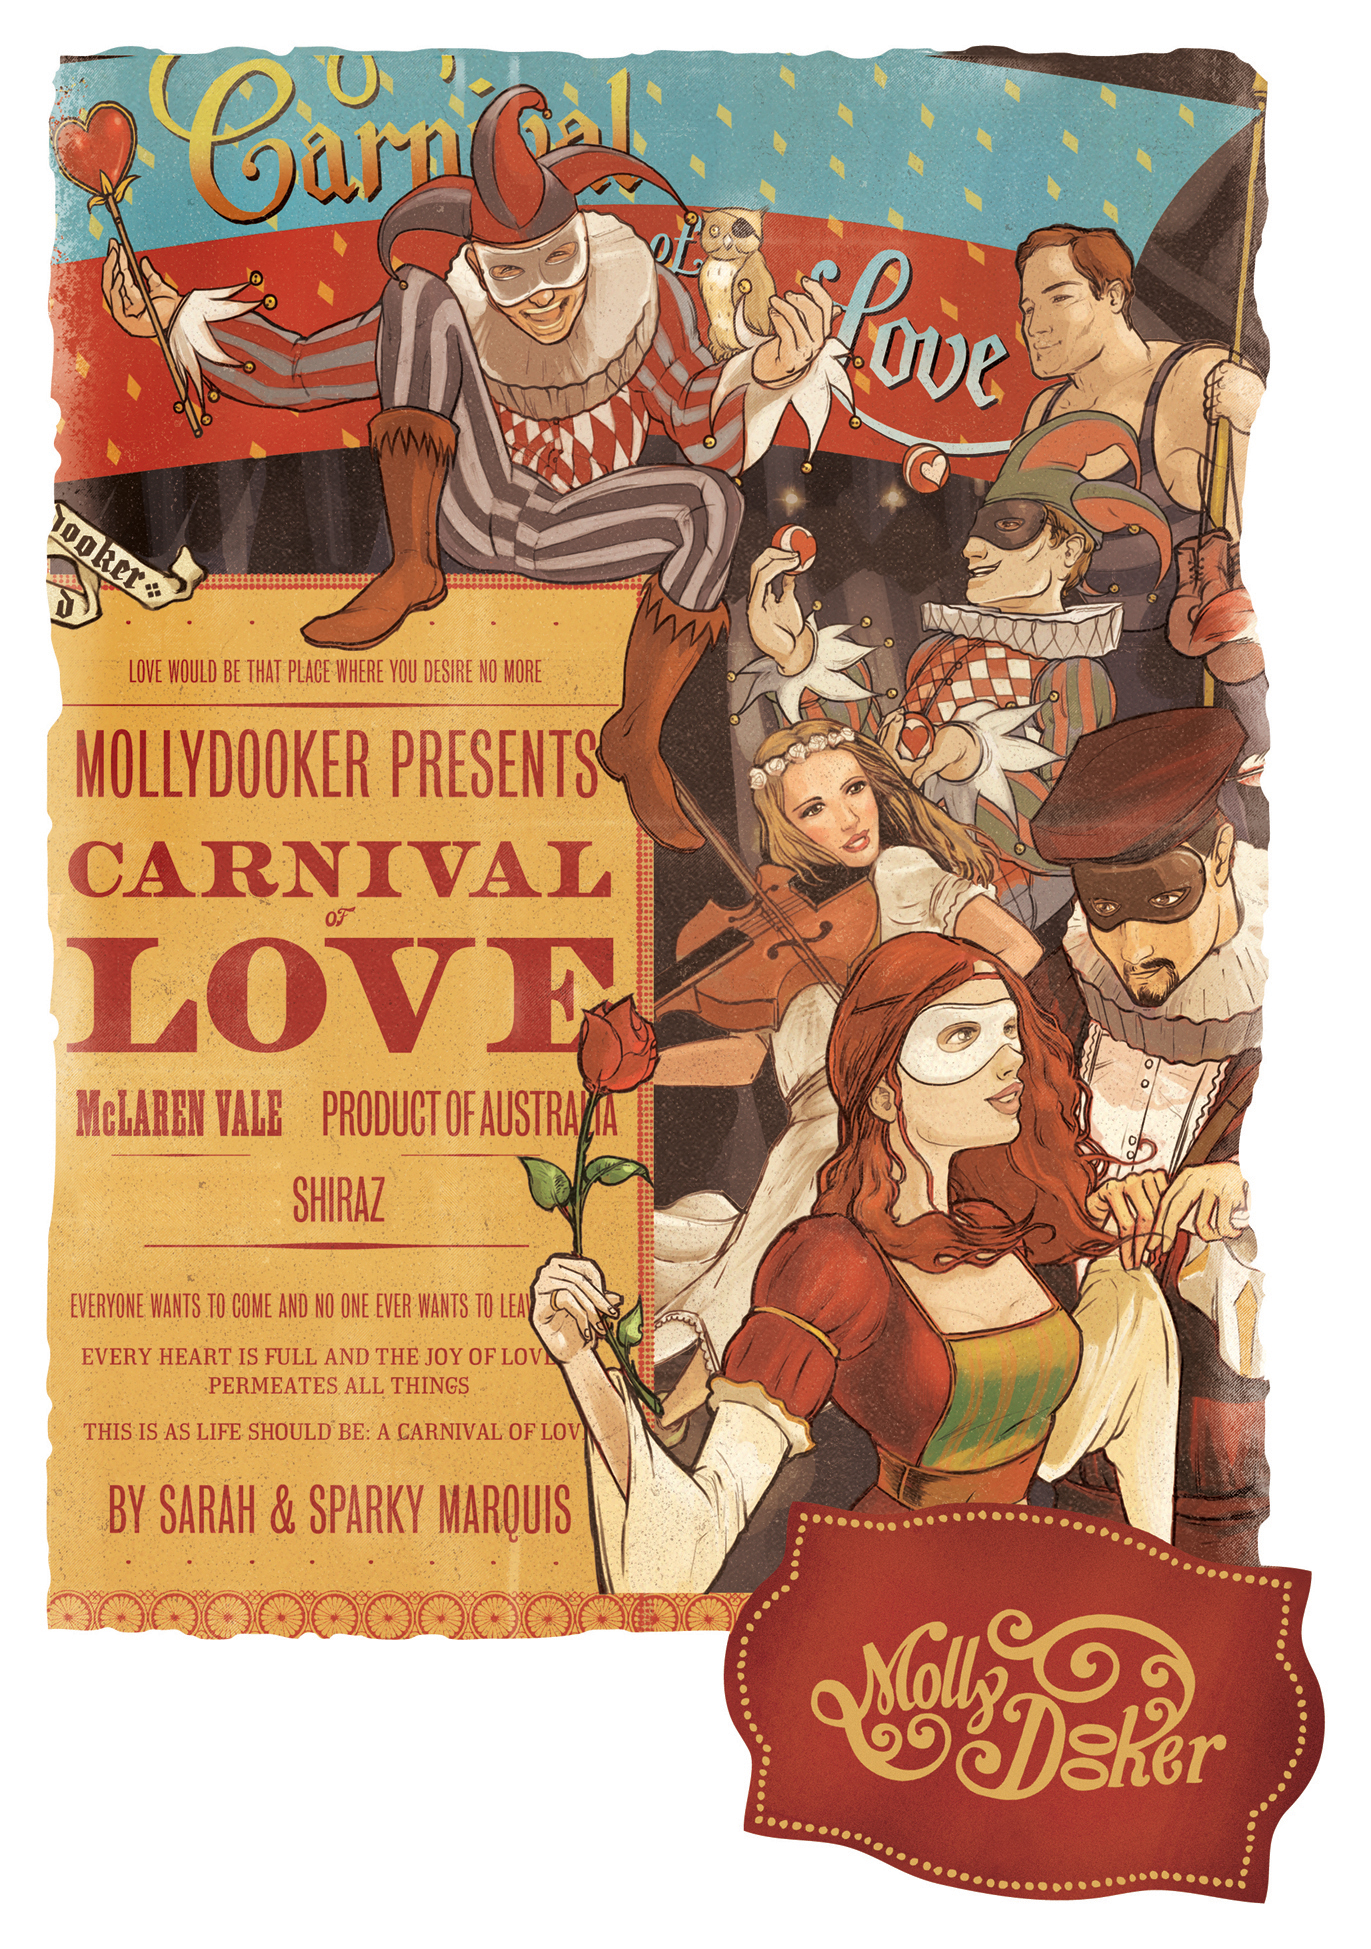 Mollydooker Shiraz Carnival of Love